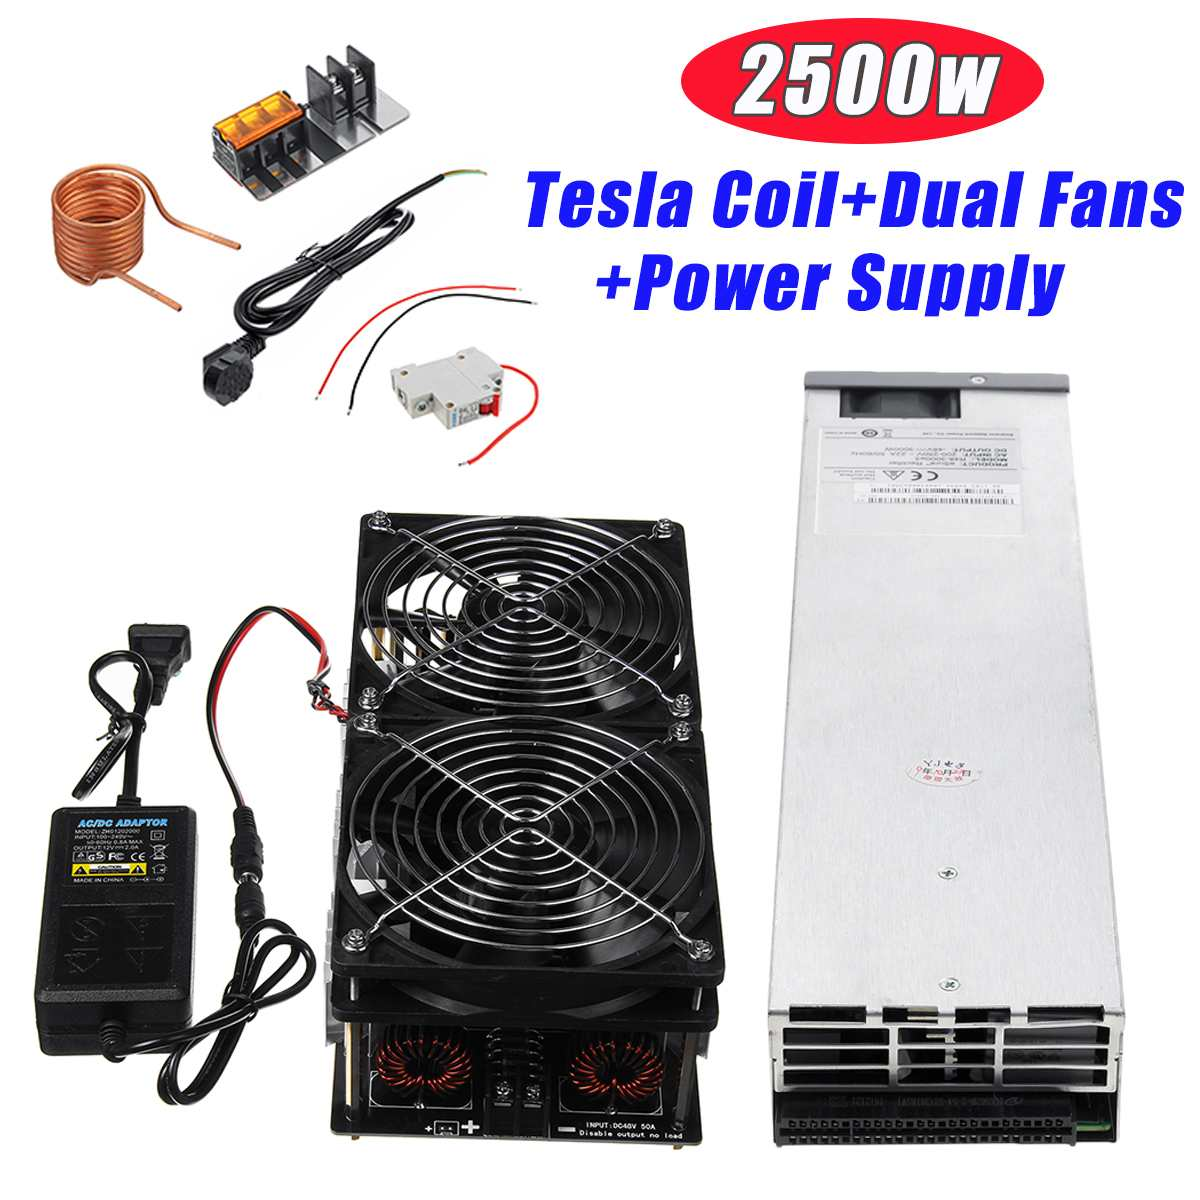 12V-48V 2500W/1800W ZVS Induction Heating Board Module Flyback Driver Heater with Coil + Dual Fan , Power Supply kit